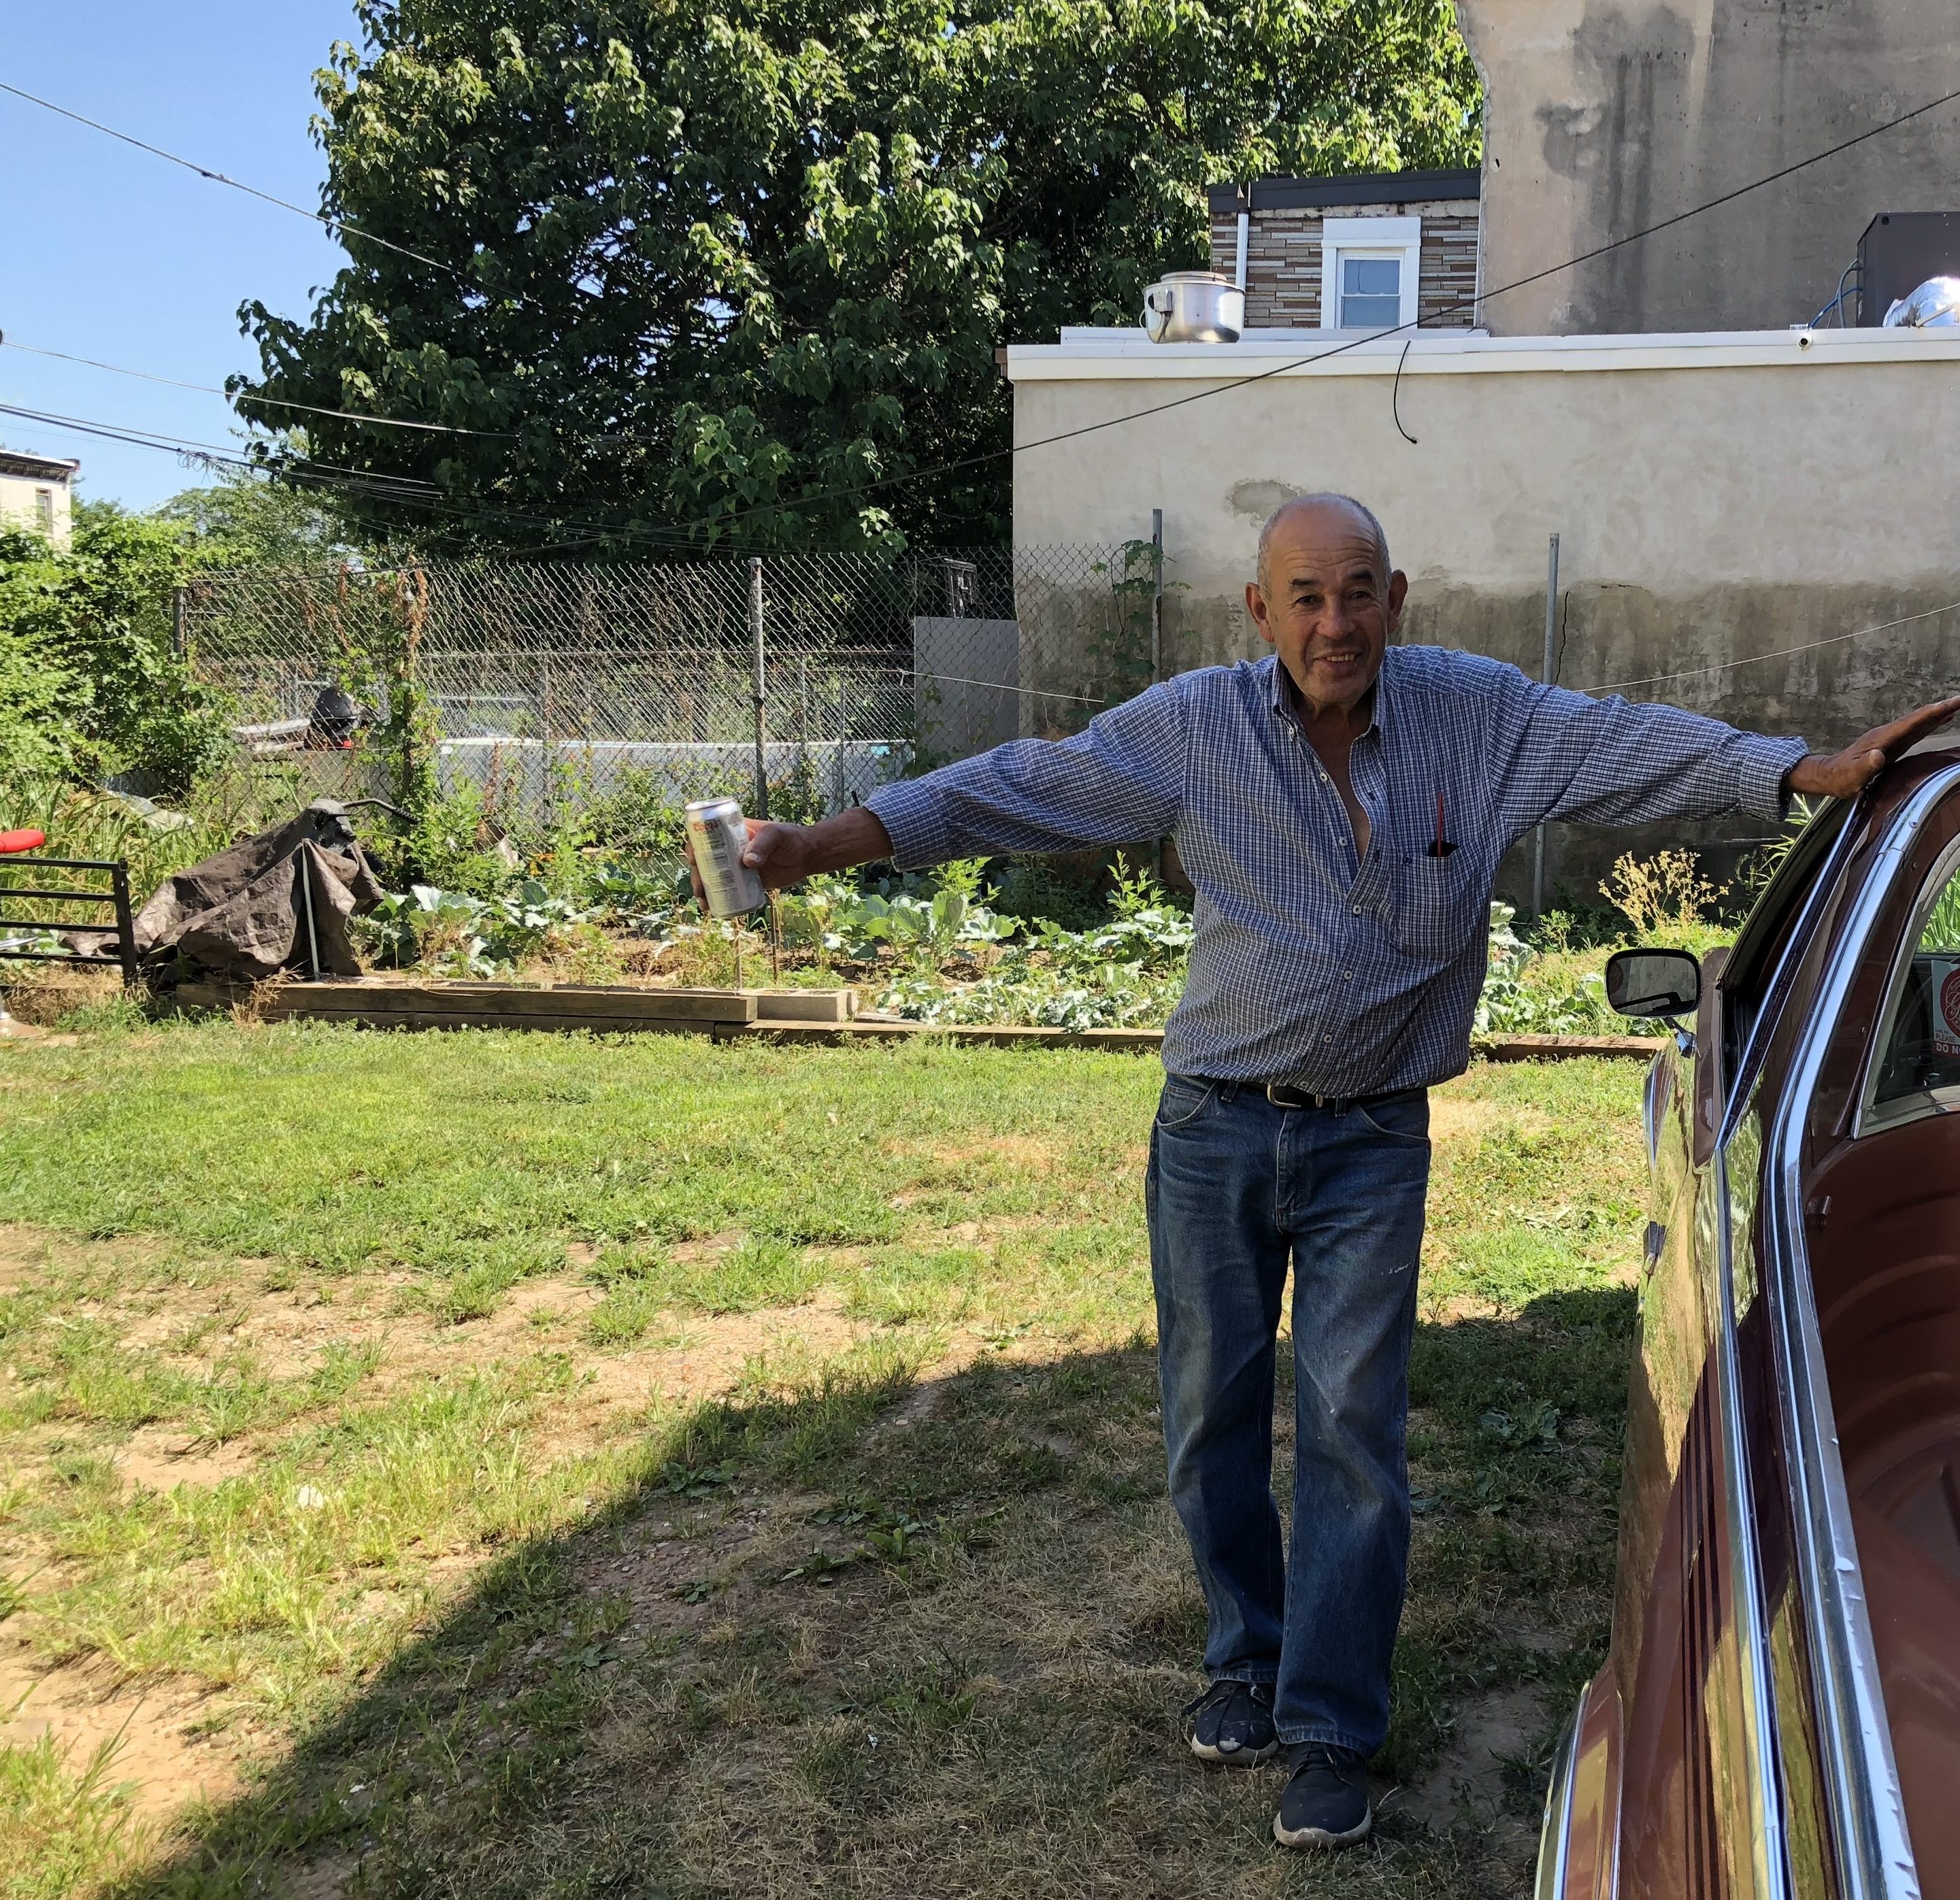 Since cleaning up a vacant lot in North Philadelphia, Rafael Martinez uses it to chat and drink beer with friends, and to plant a garden.